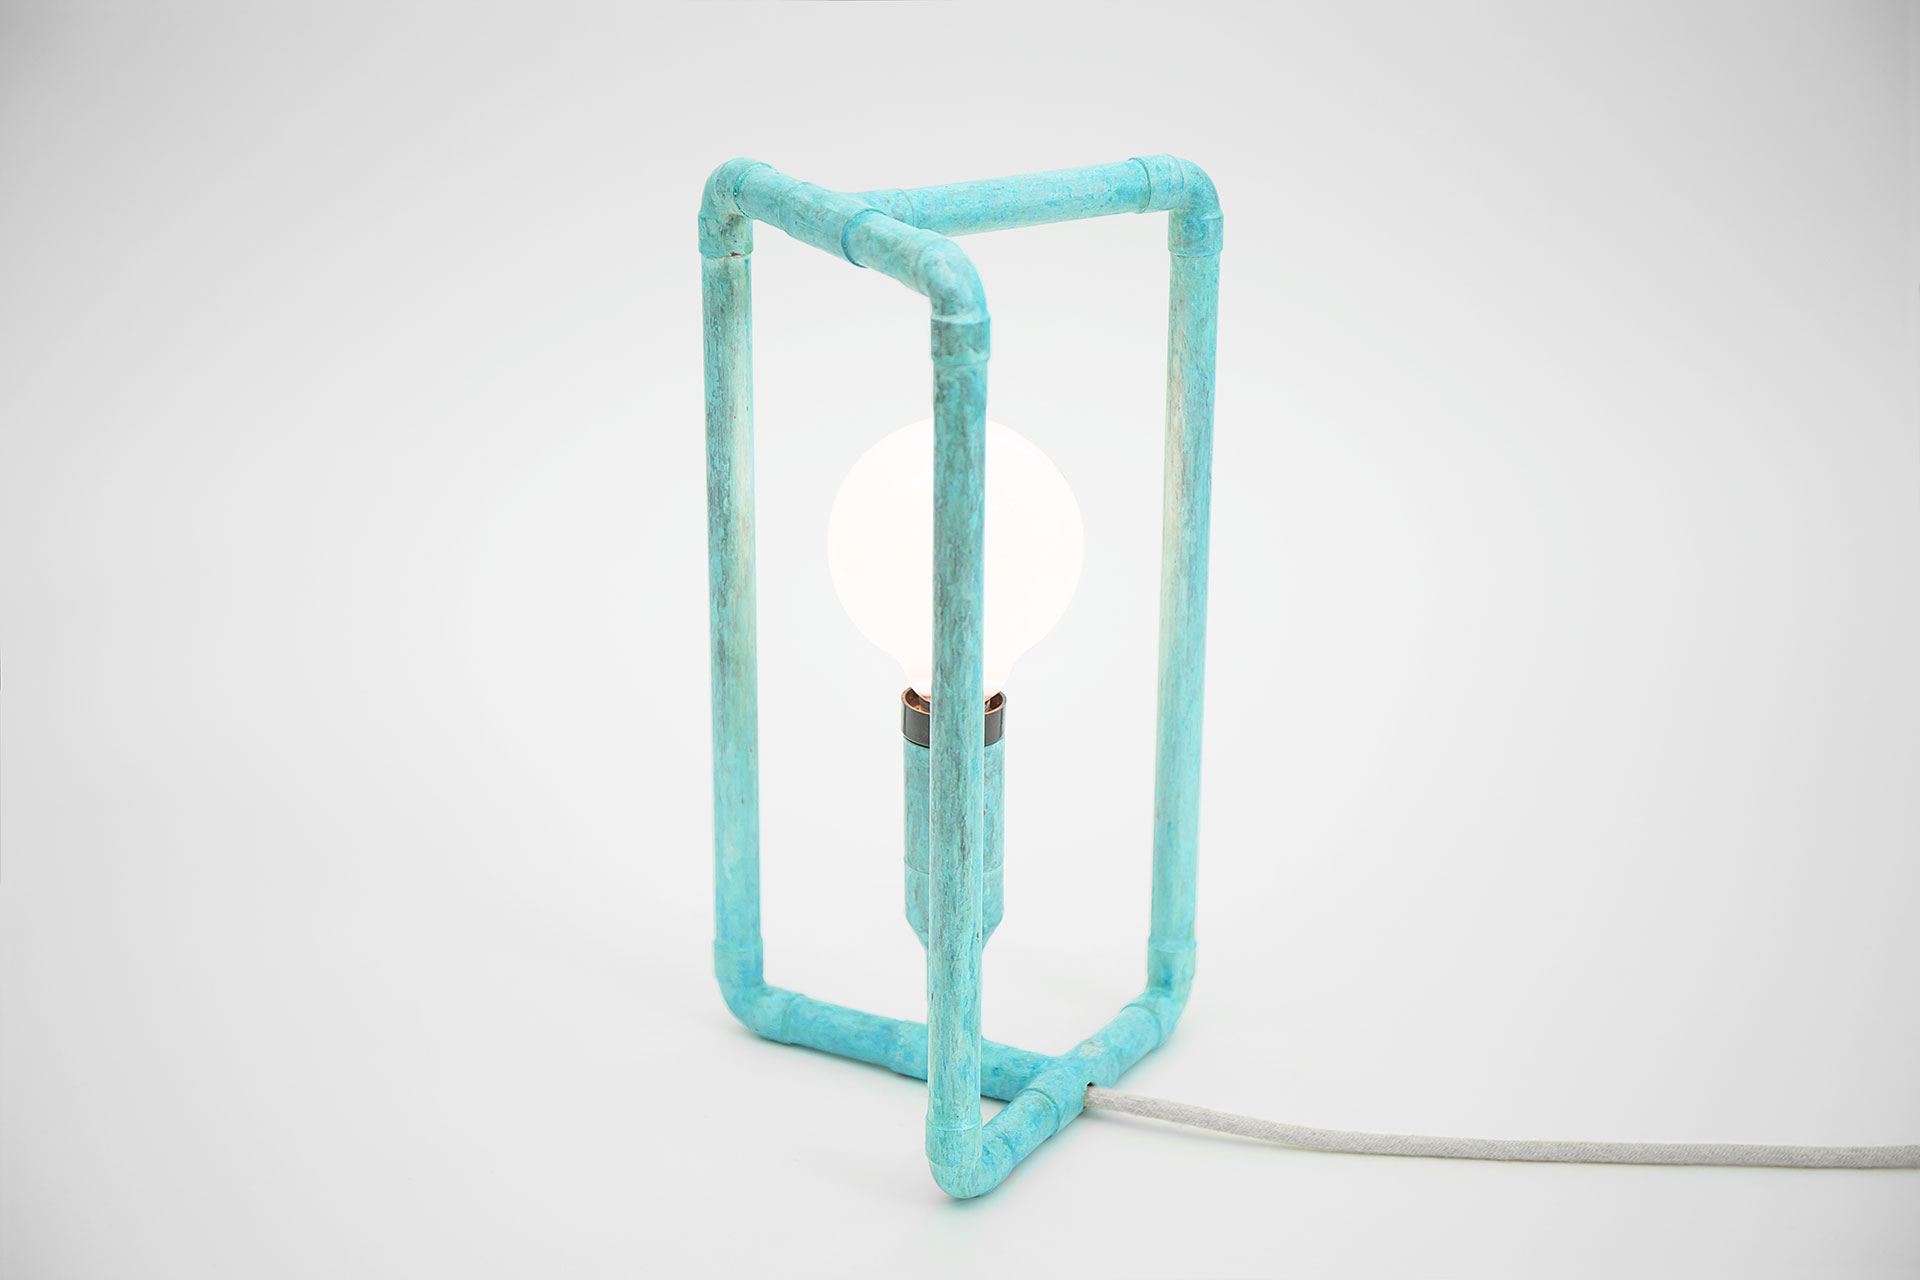 Cozy bedside lamp in trendy turquoise patina with creative touch dimmer inspired by scandinavian design